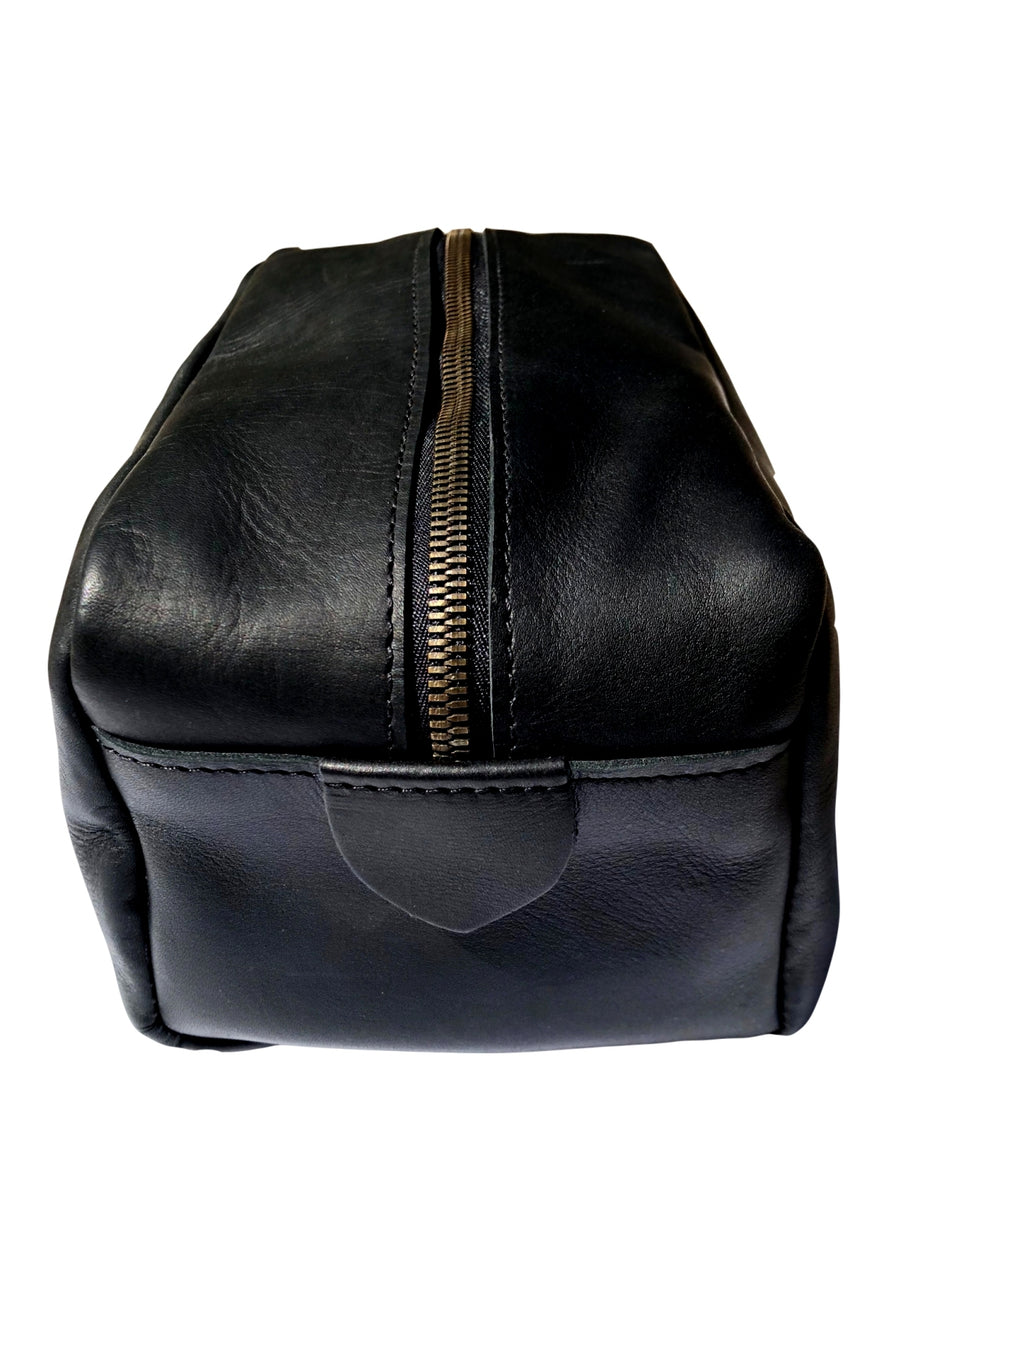 Leather Toiletry Dopp Kit - Black